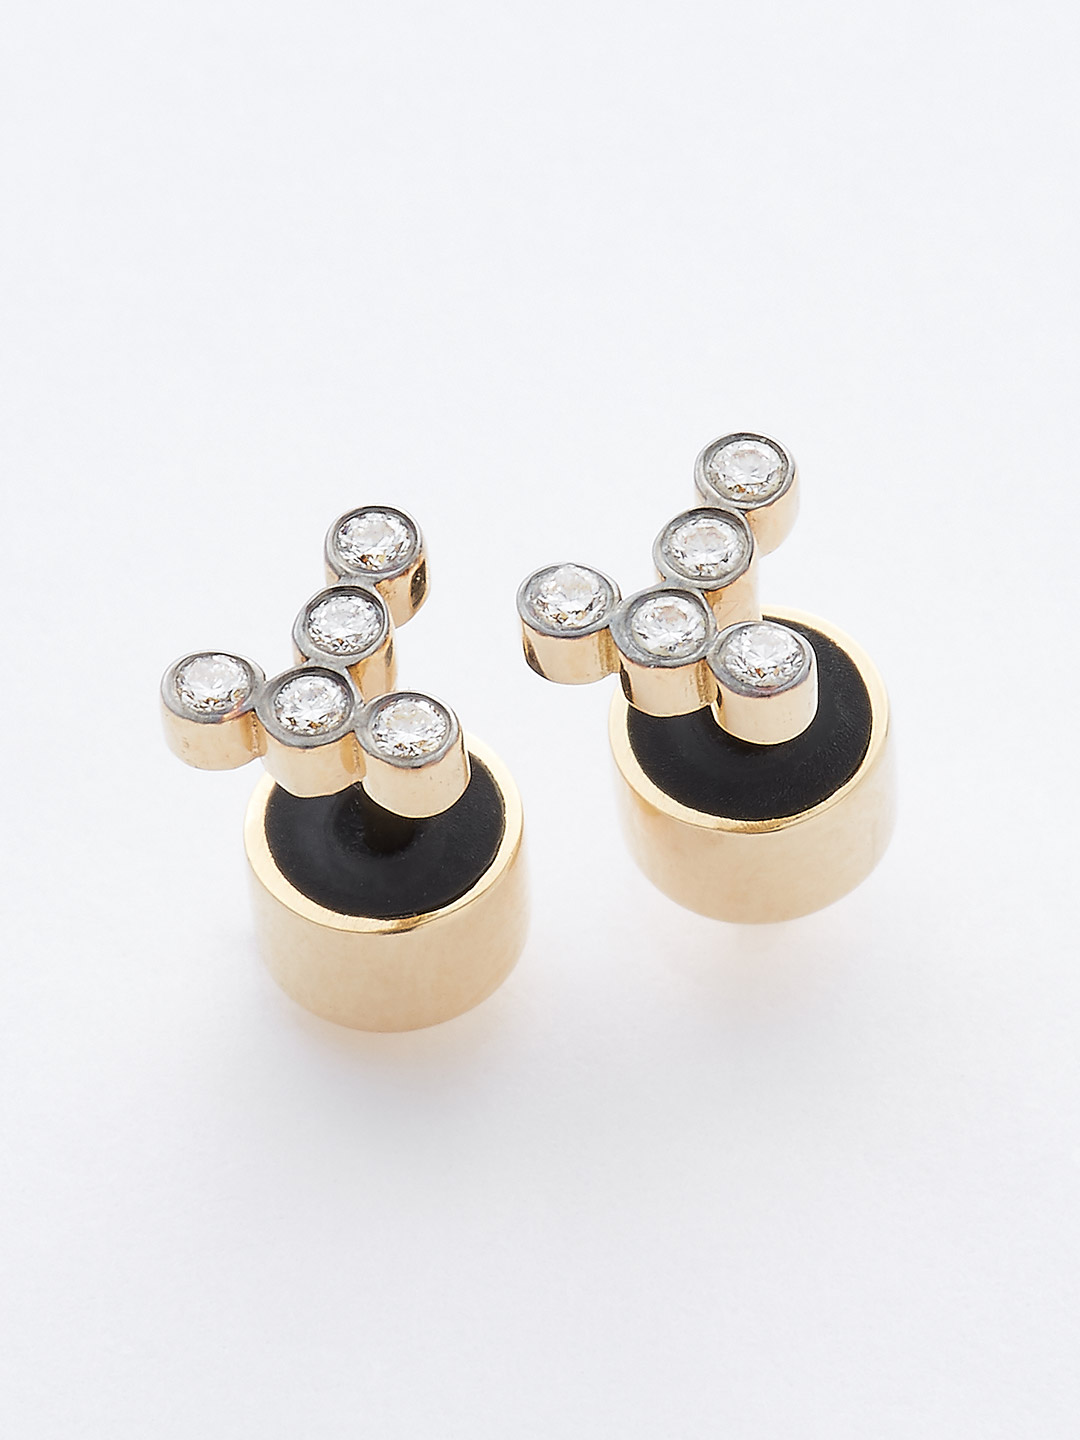 Diamond Pierced Earring - 18K Yellow Gold